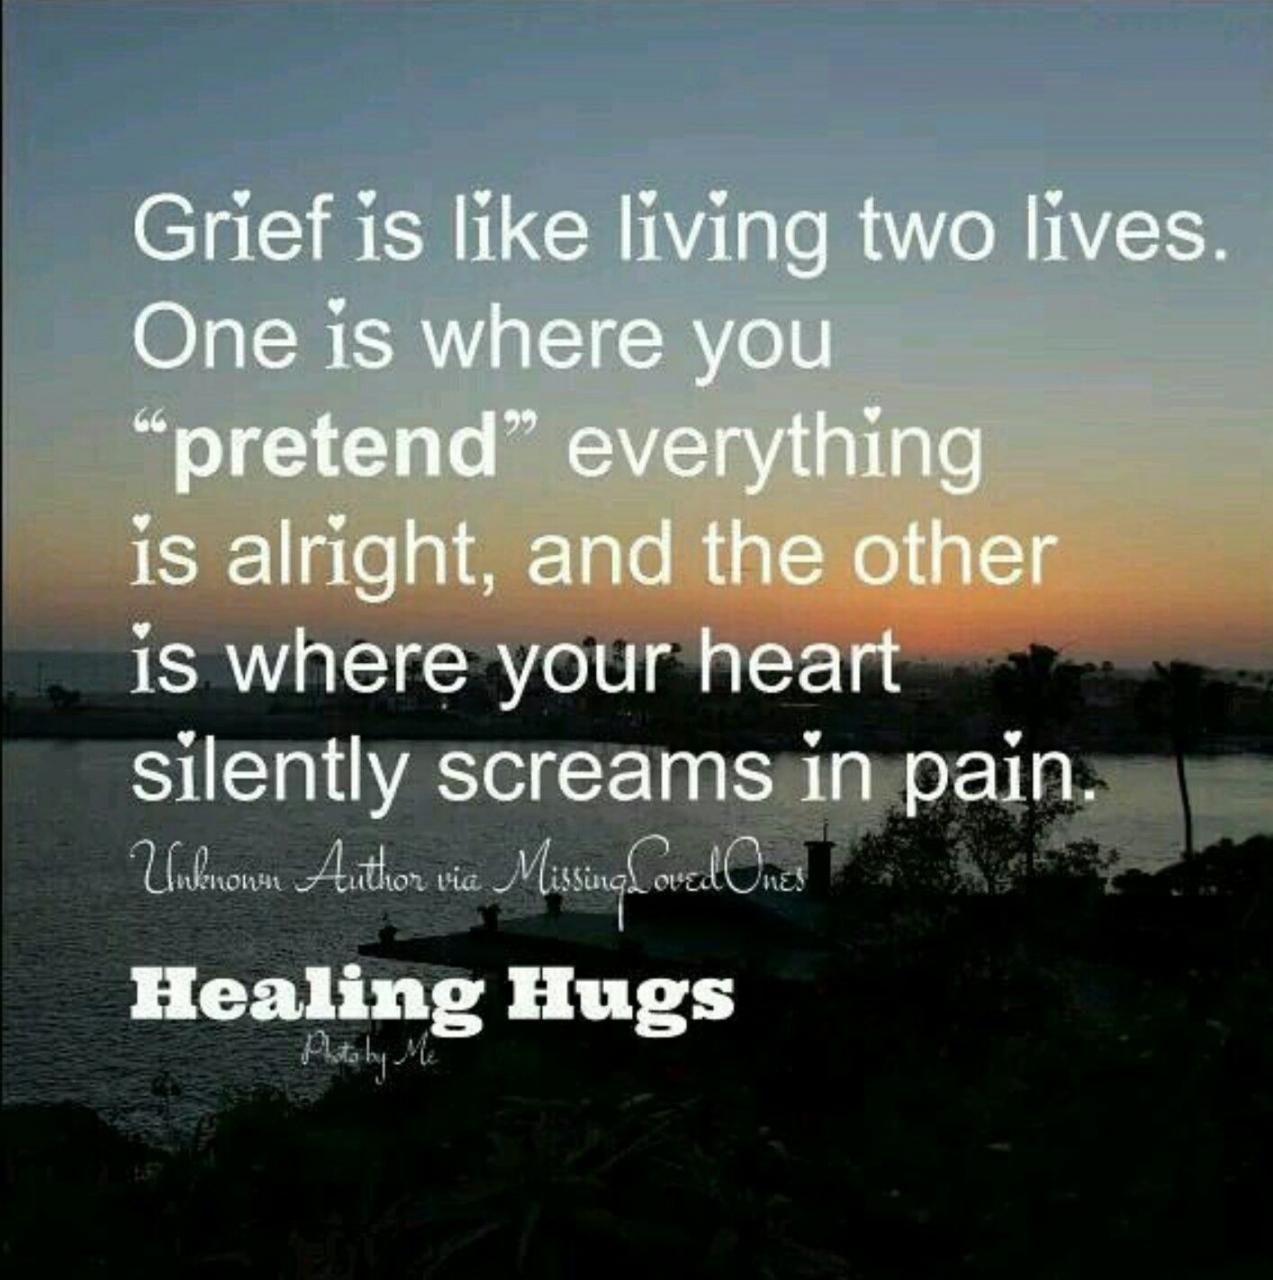 Grieving Quotes Grief Loss Inspirational Quotes Favorite Quotes Mothers Friend Cancer Mom Life Coach Quotes Grieve Quotes